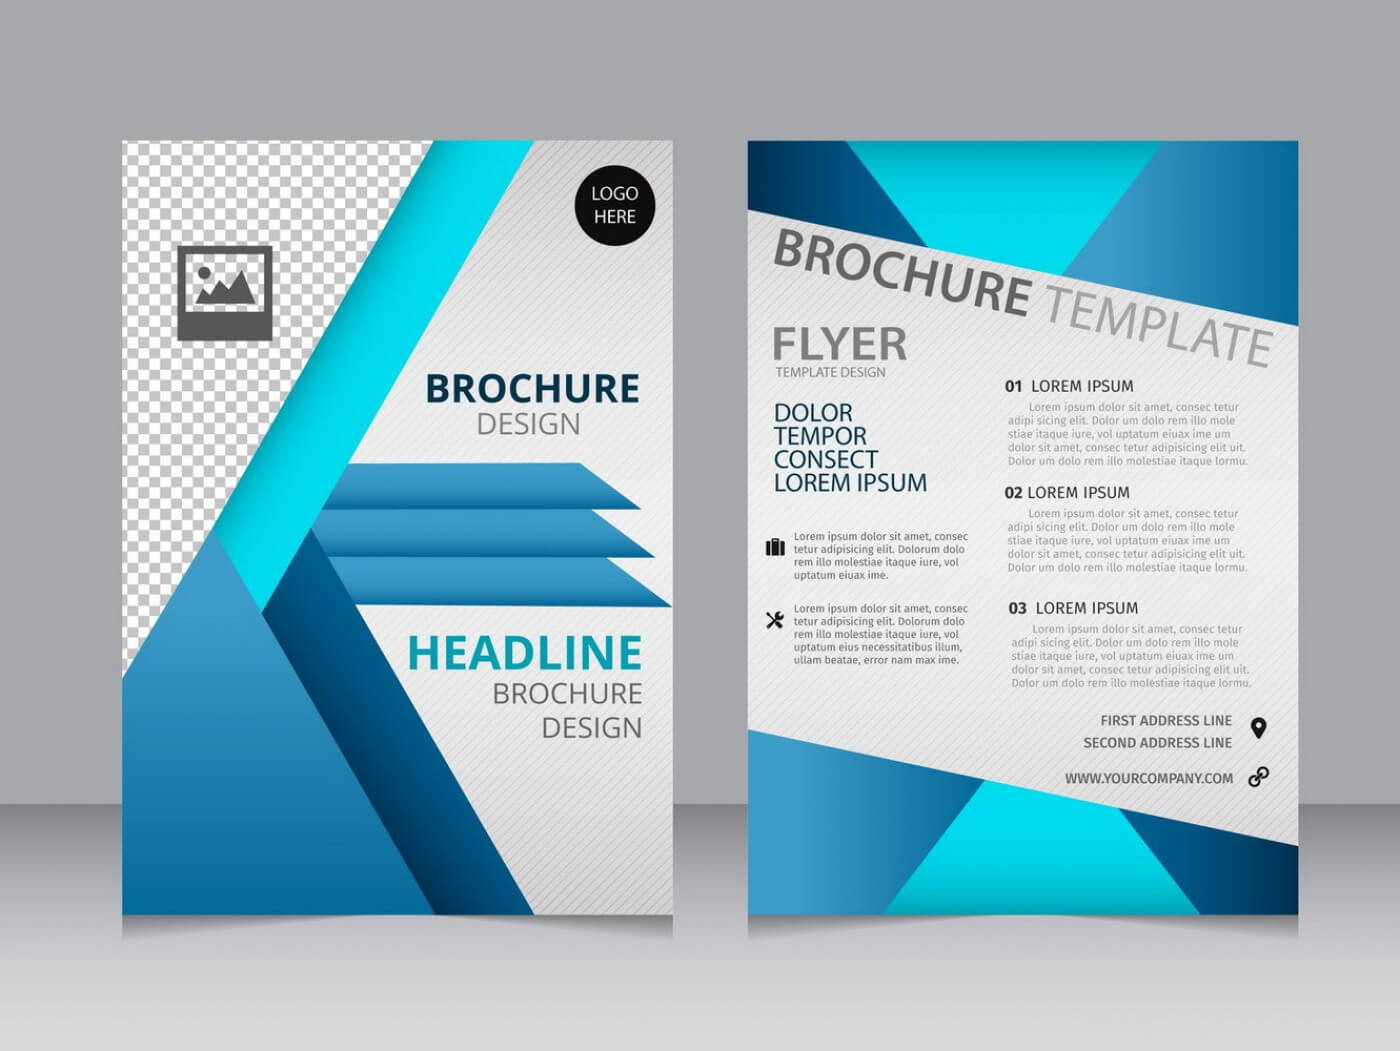 007 Blank Brochure Templates Free Download Word Template With Regard To Free Illustrator Brochure Templates Download